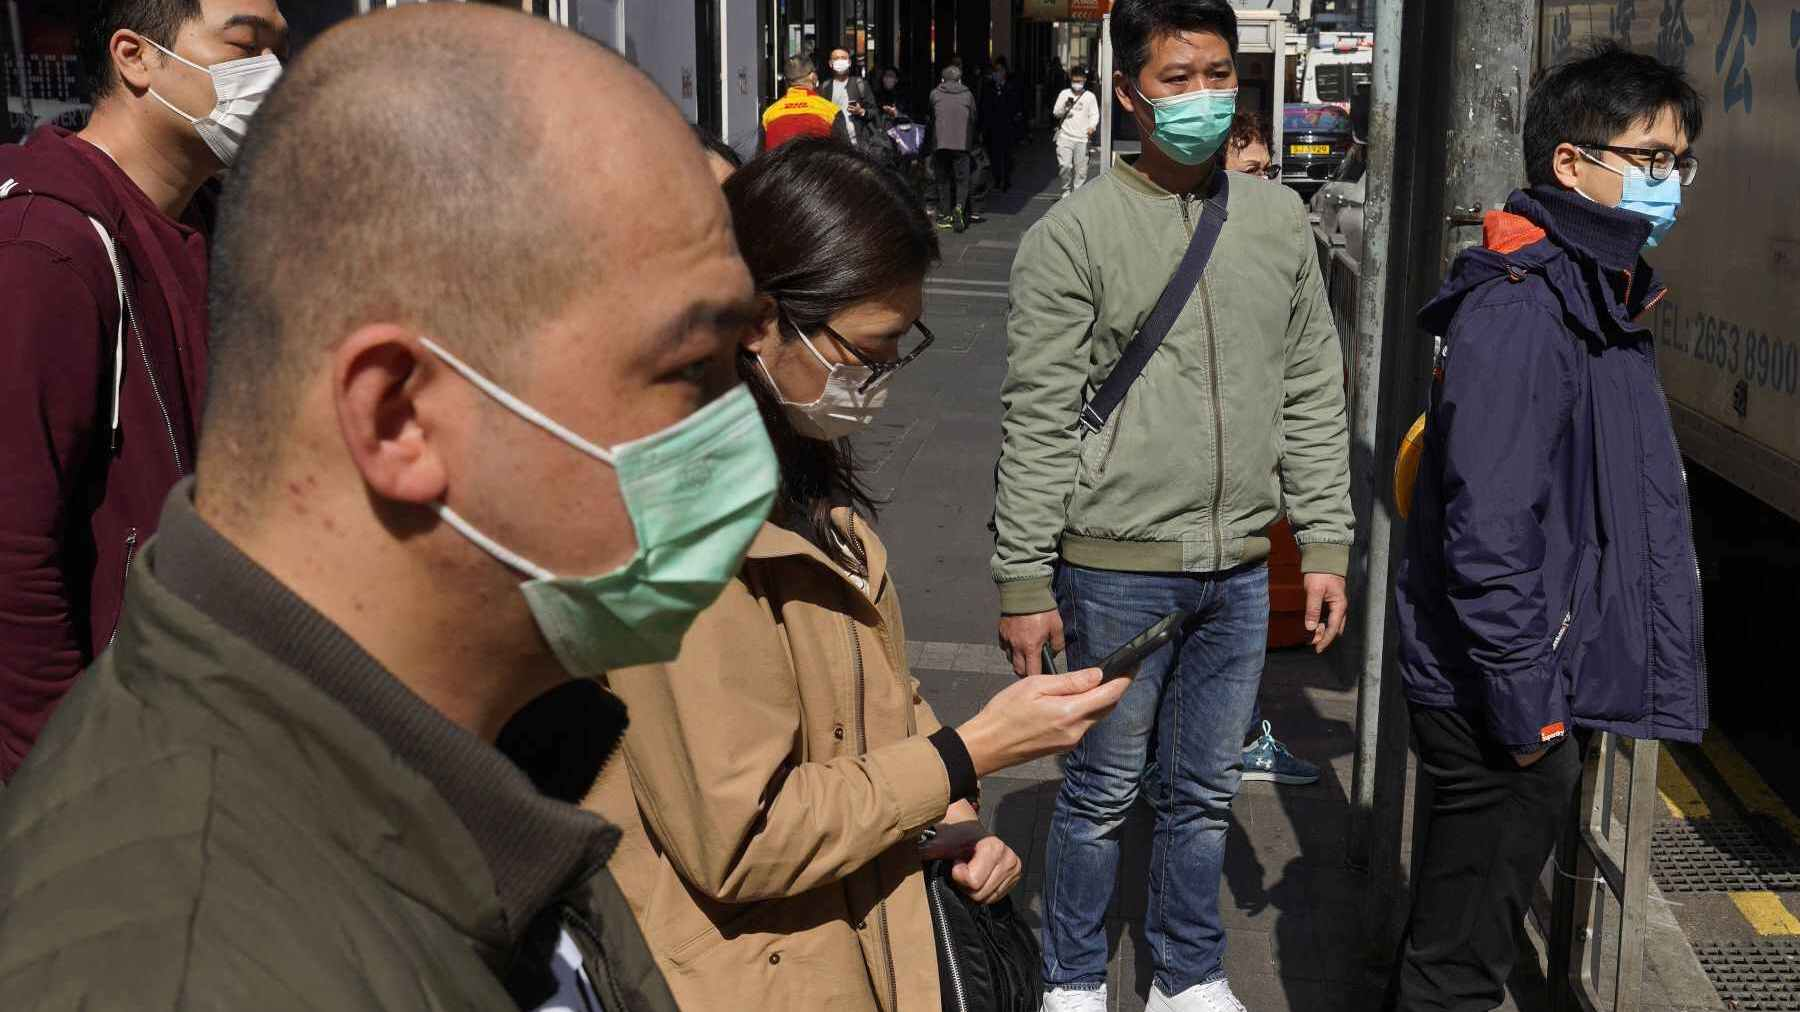 People wearing face masks walk on a down own street in Hong Kong Friday, Feb. 21, 2020. COVID-19 viral illness has sickened tens of thousands of people in China since December. (Associated Press)